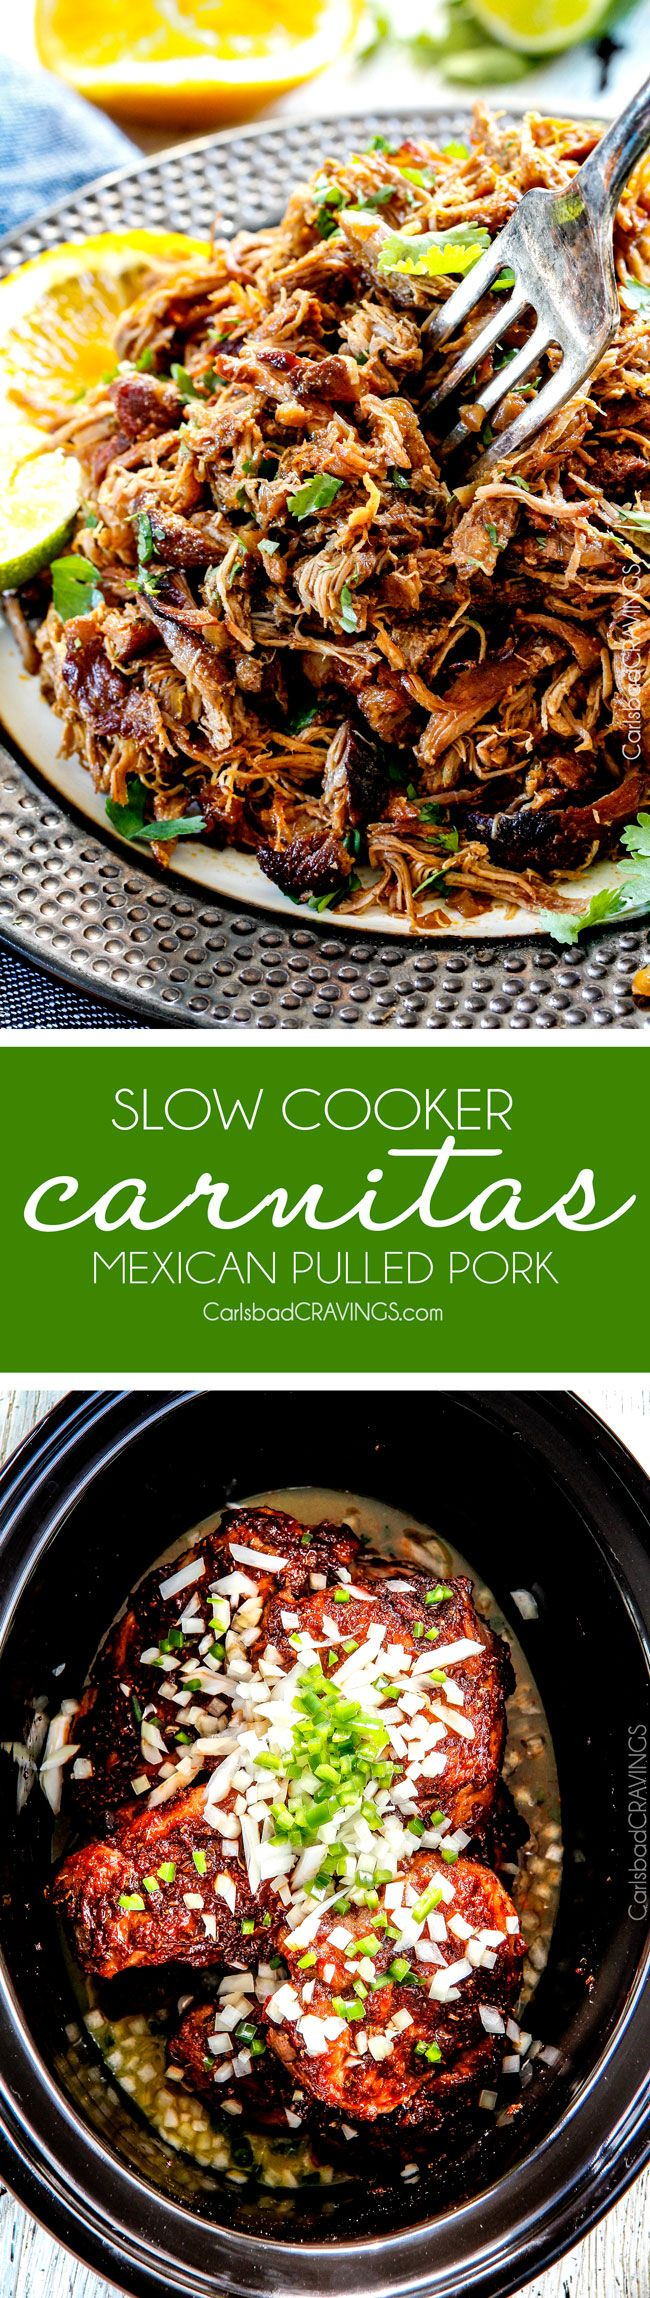 these are the BEST Pork Carnitas (Slow Cooker Mexican Pulled Pork) I have ever tried! Super juicy, easy and so much more flavorful than other versions I've tried and the crispy burnt ends are the best